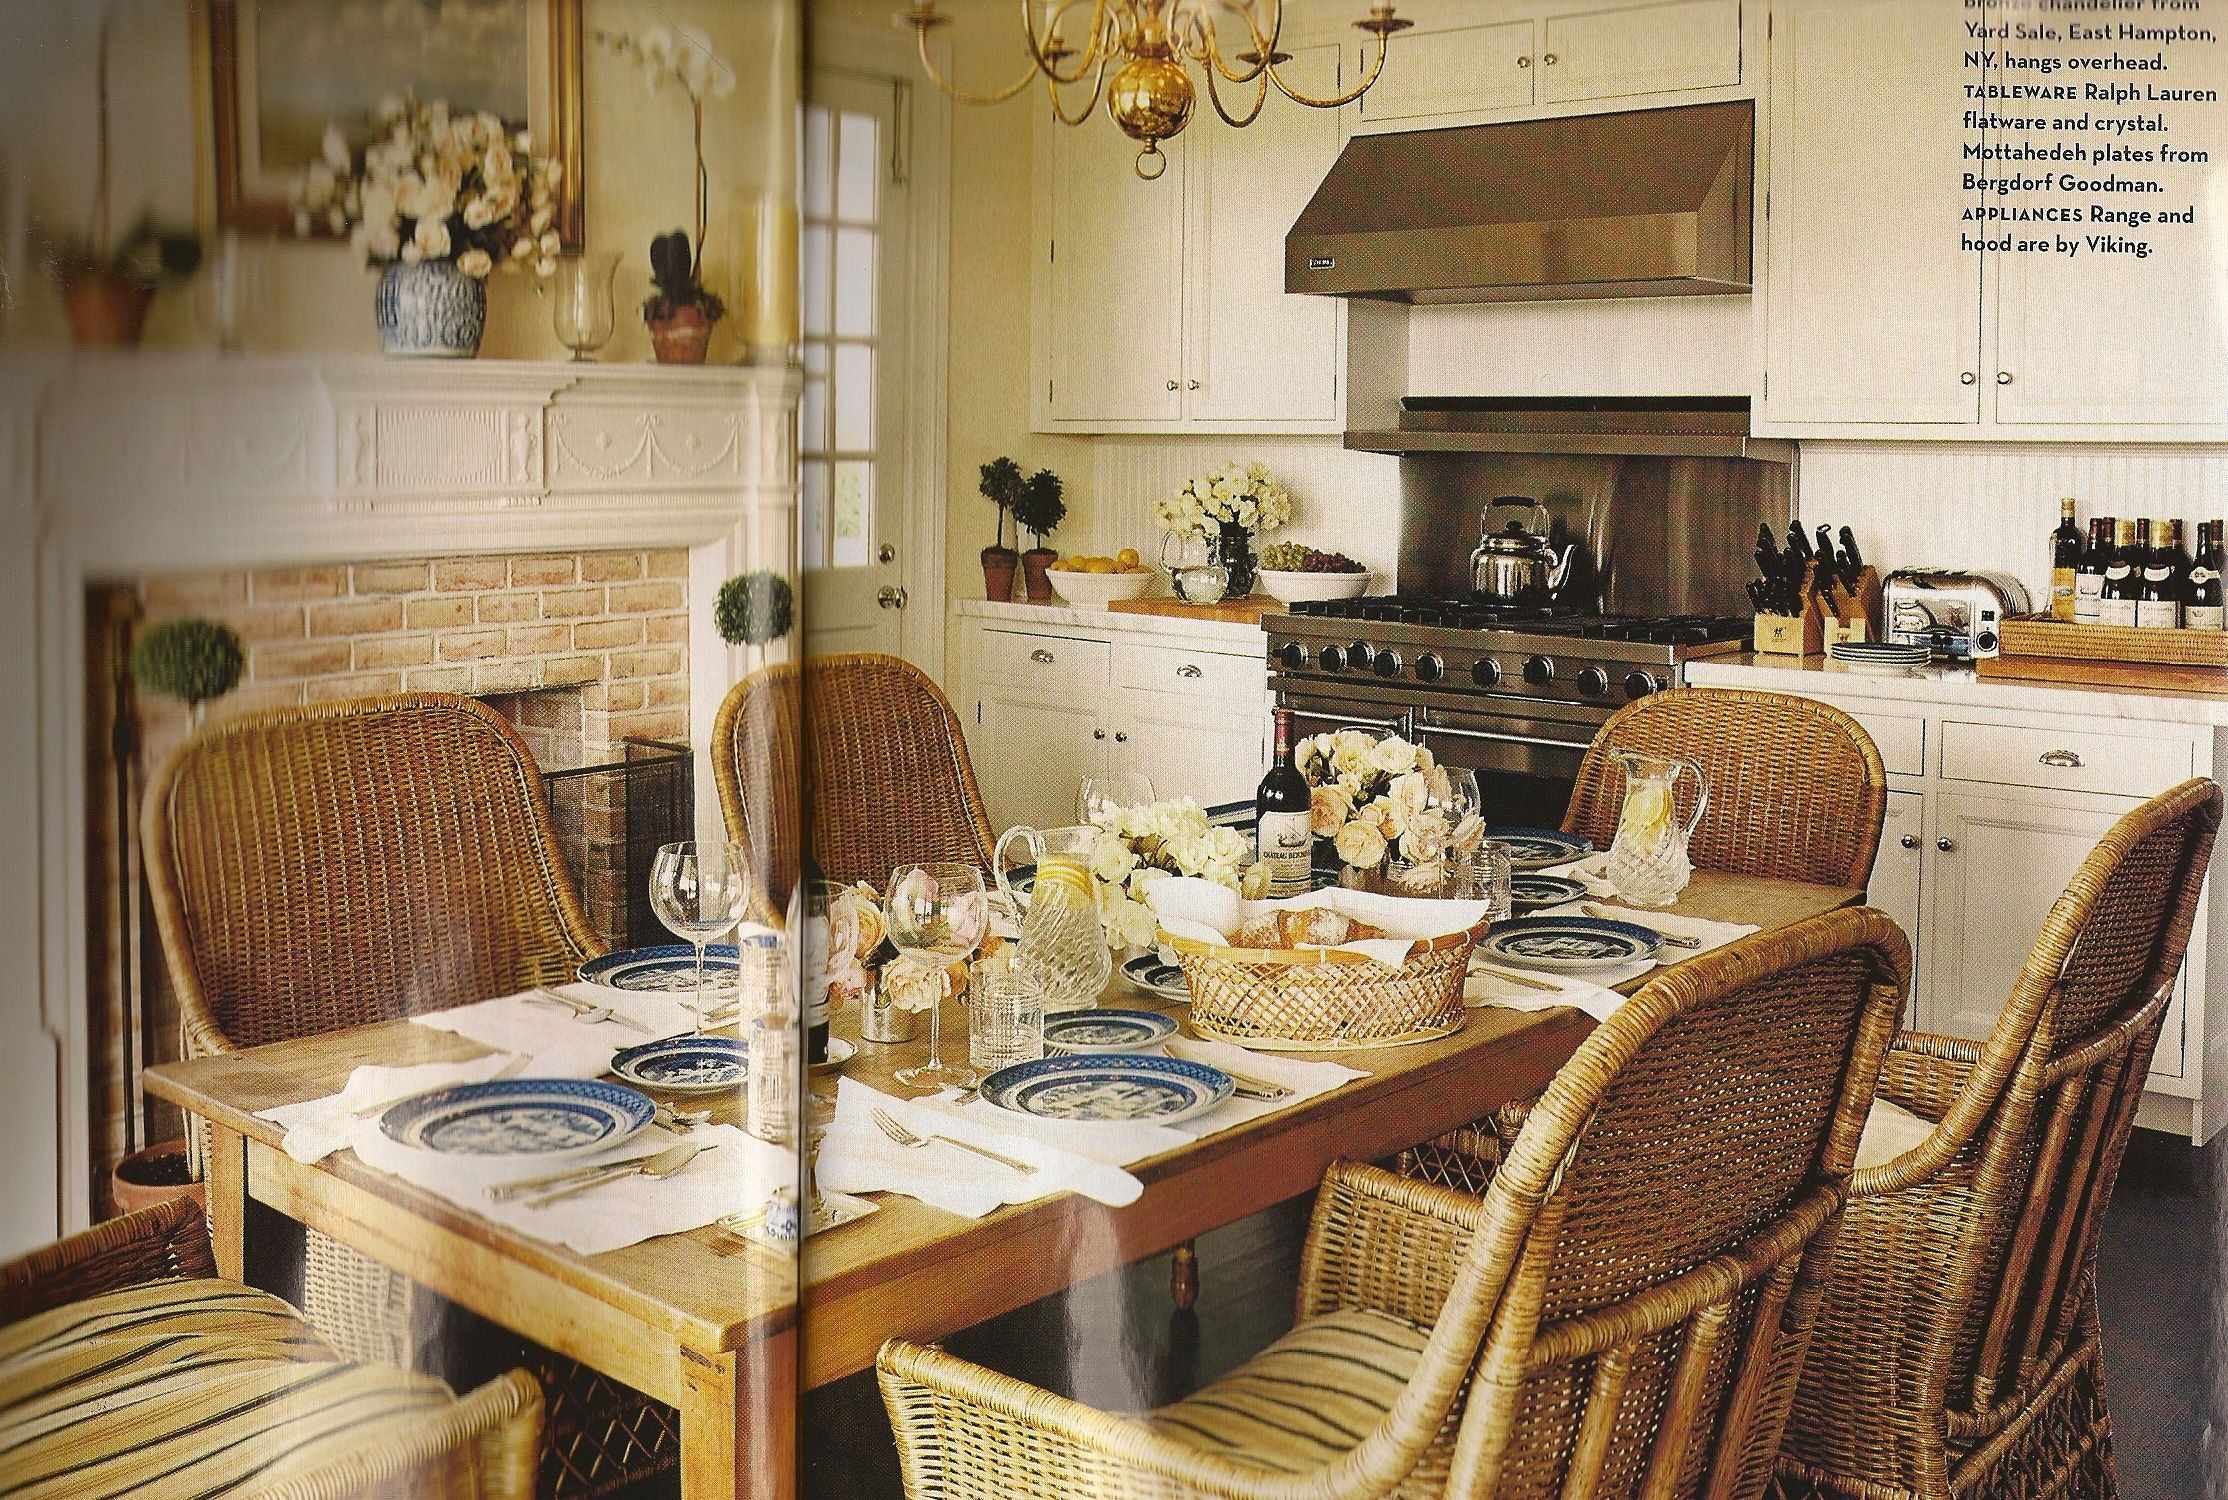 whitney fairchild hamptons house - Google Search | Heart of the Home ...